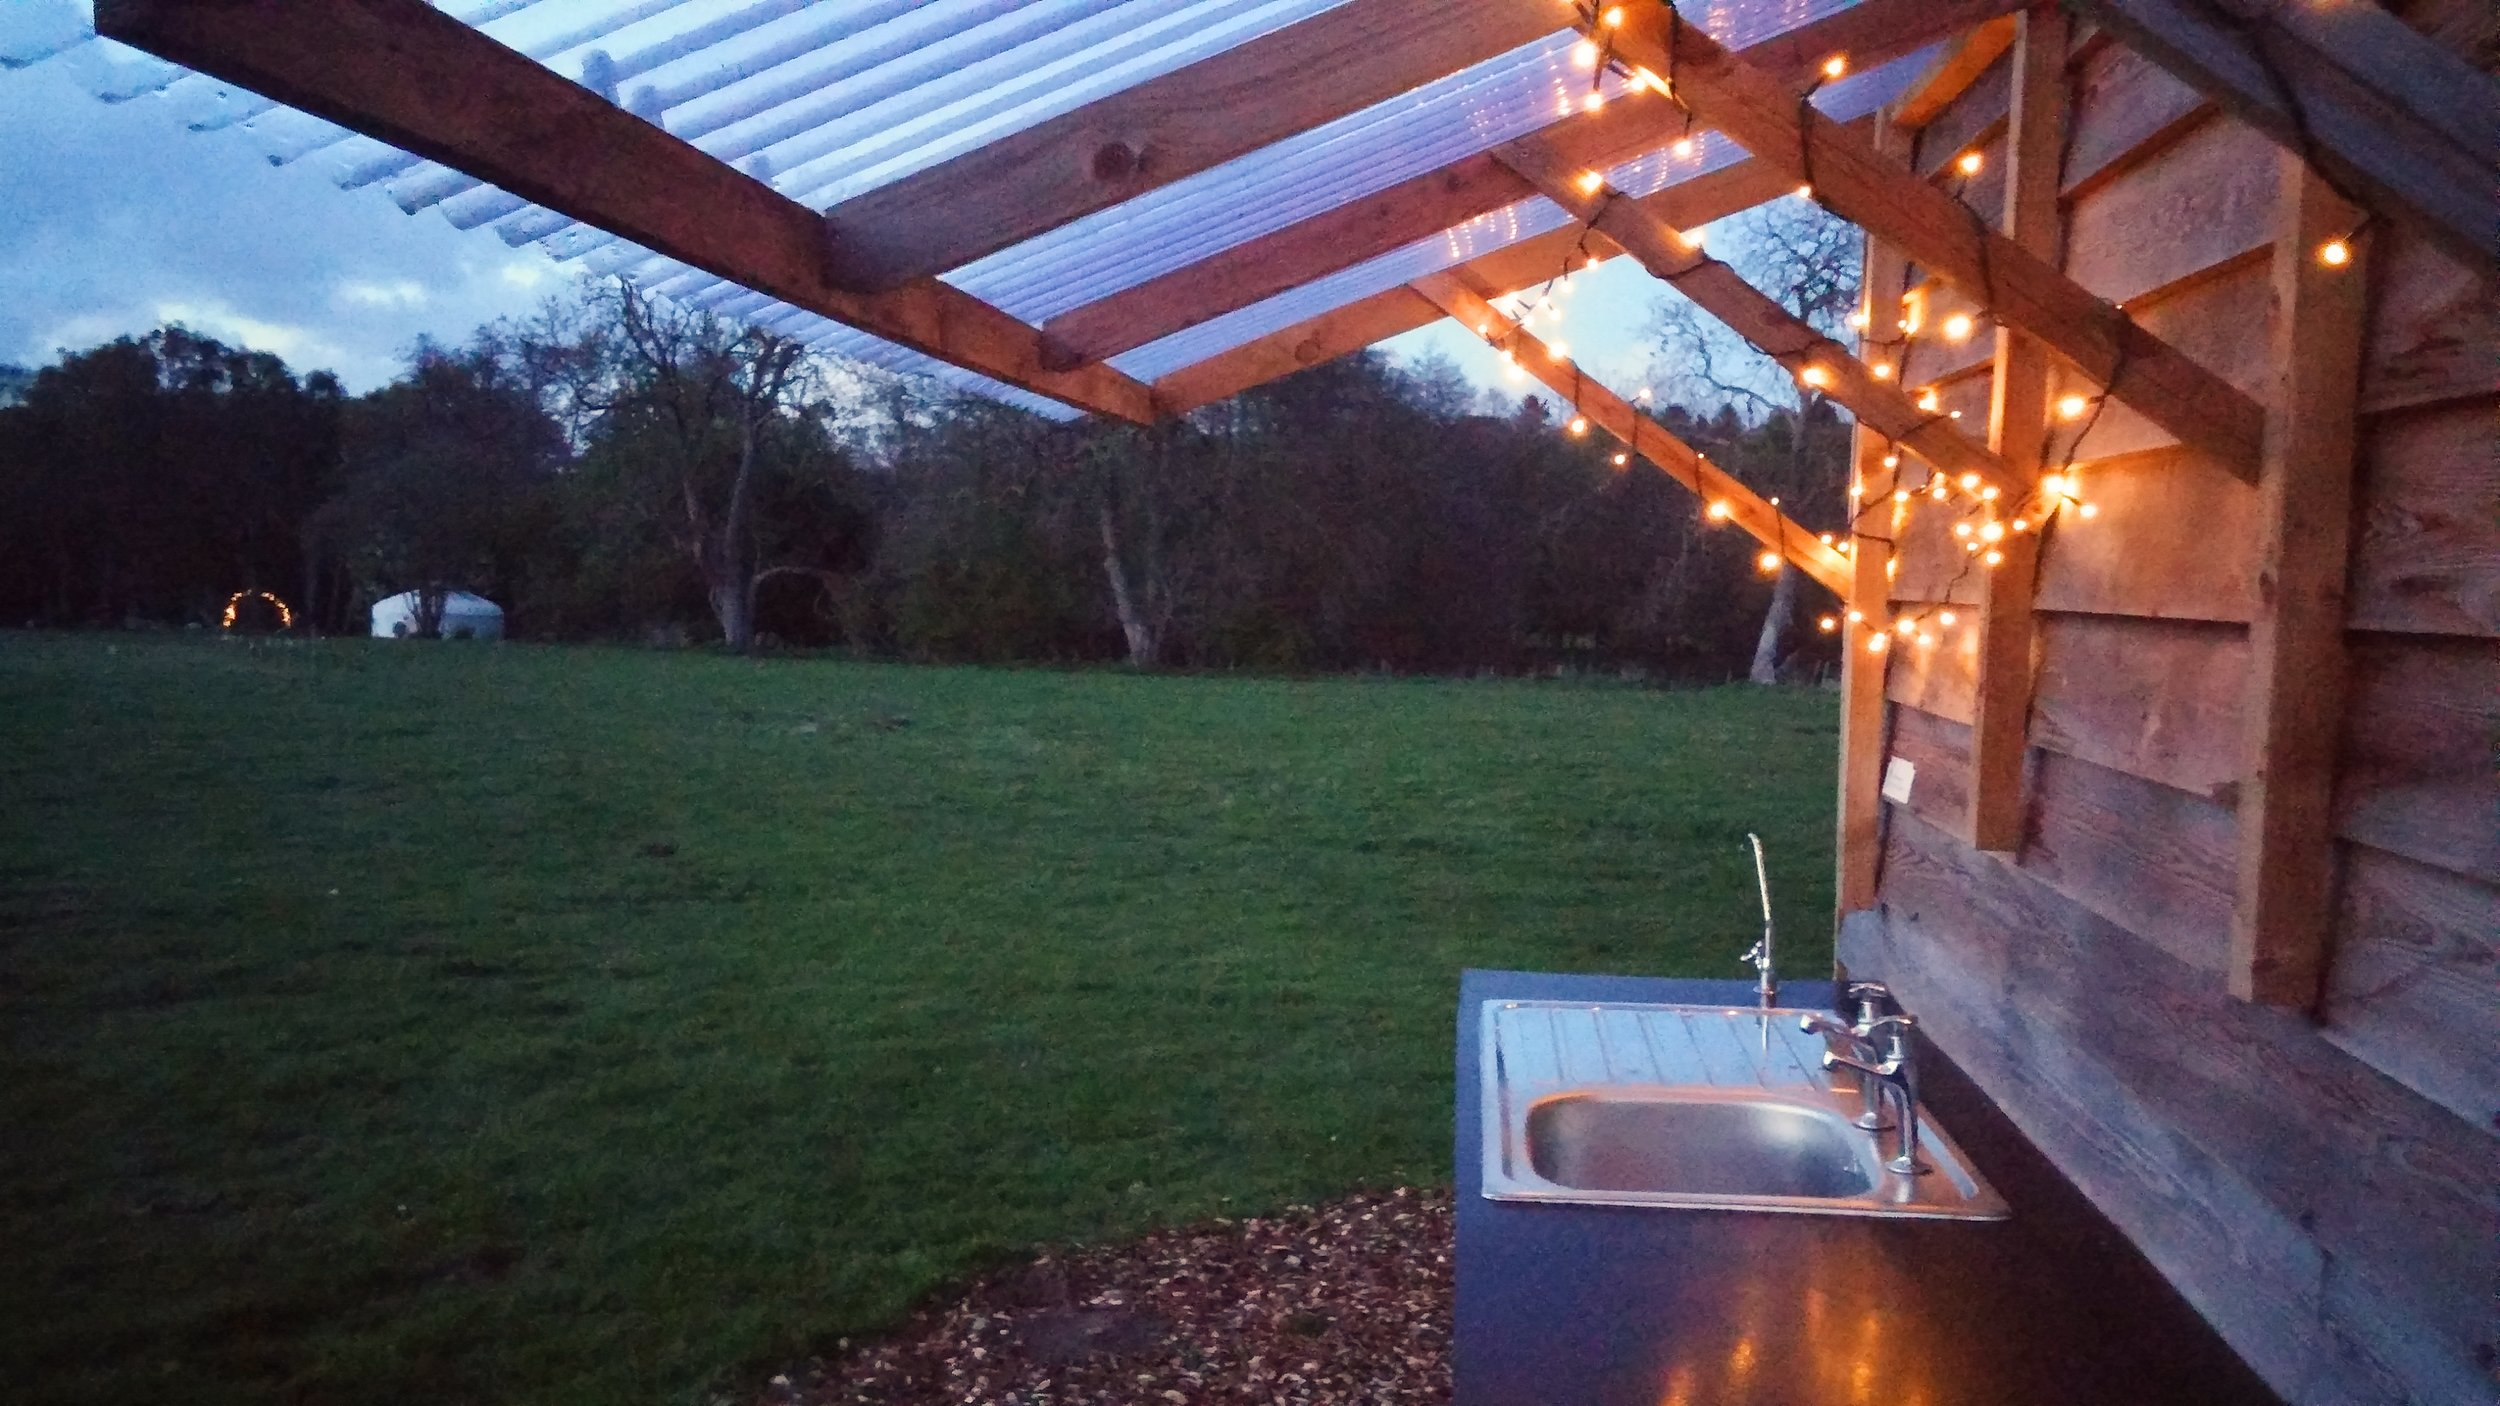 washing up area with fairy lights.jpg